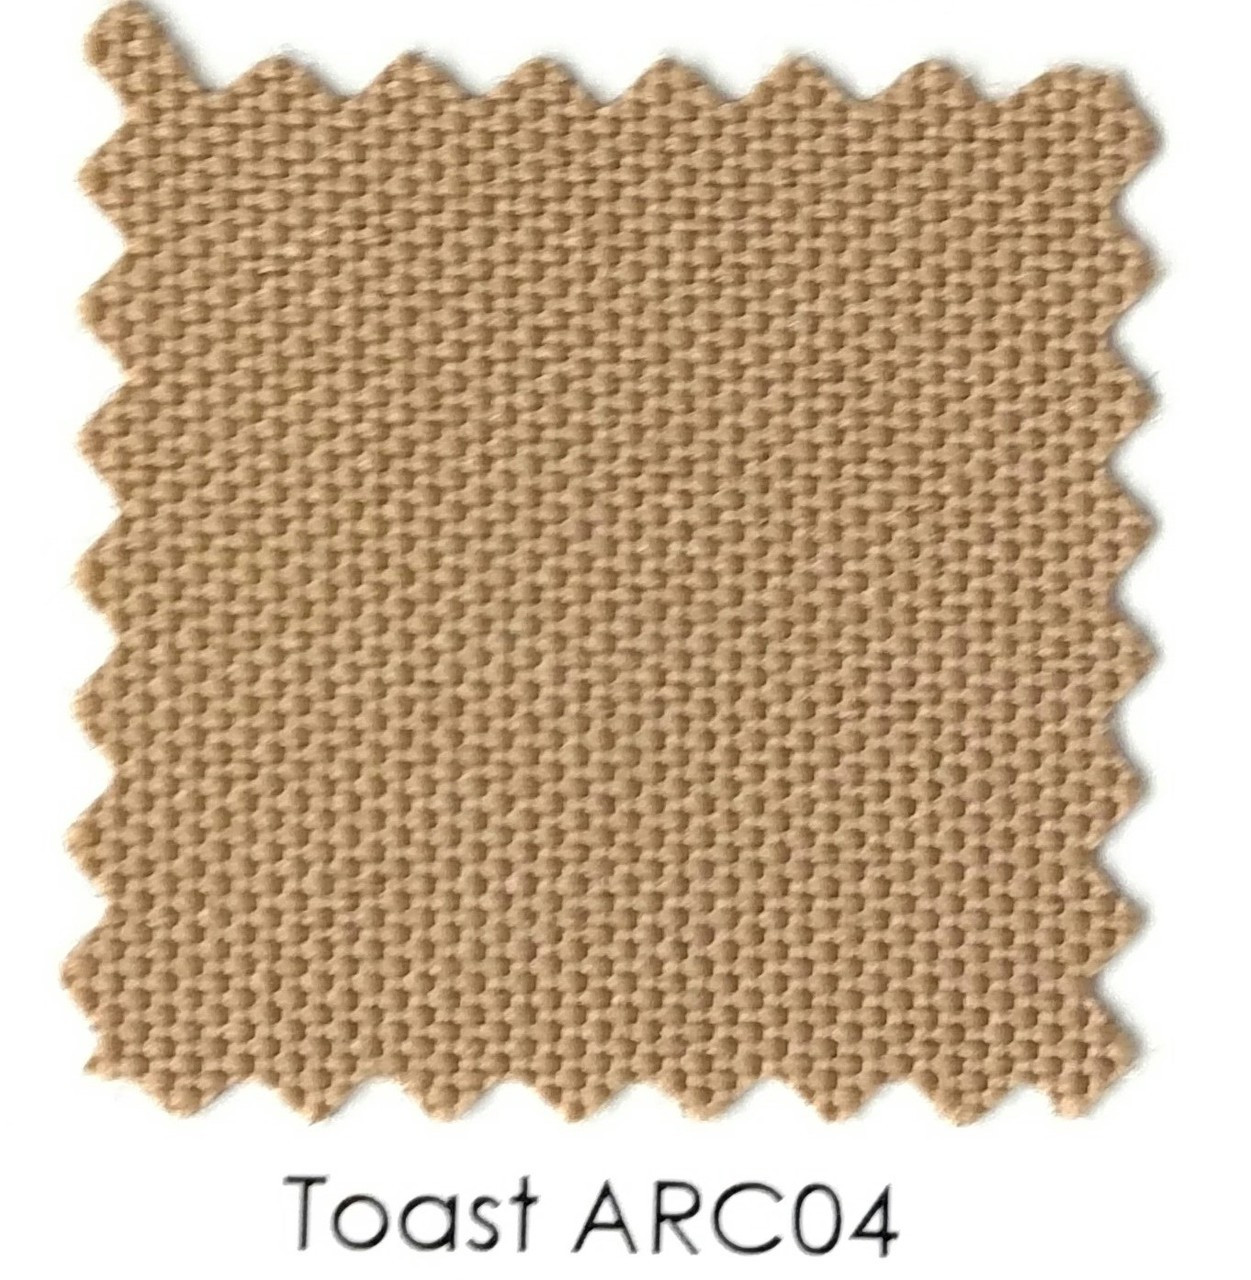 Arcadia Toast Outdoor Fabric 60""